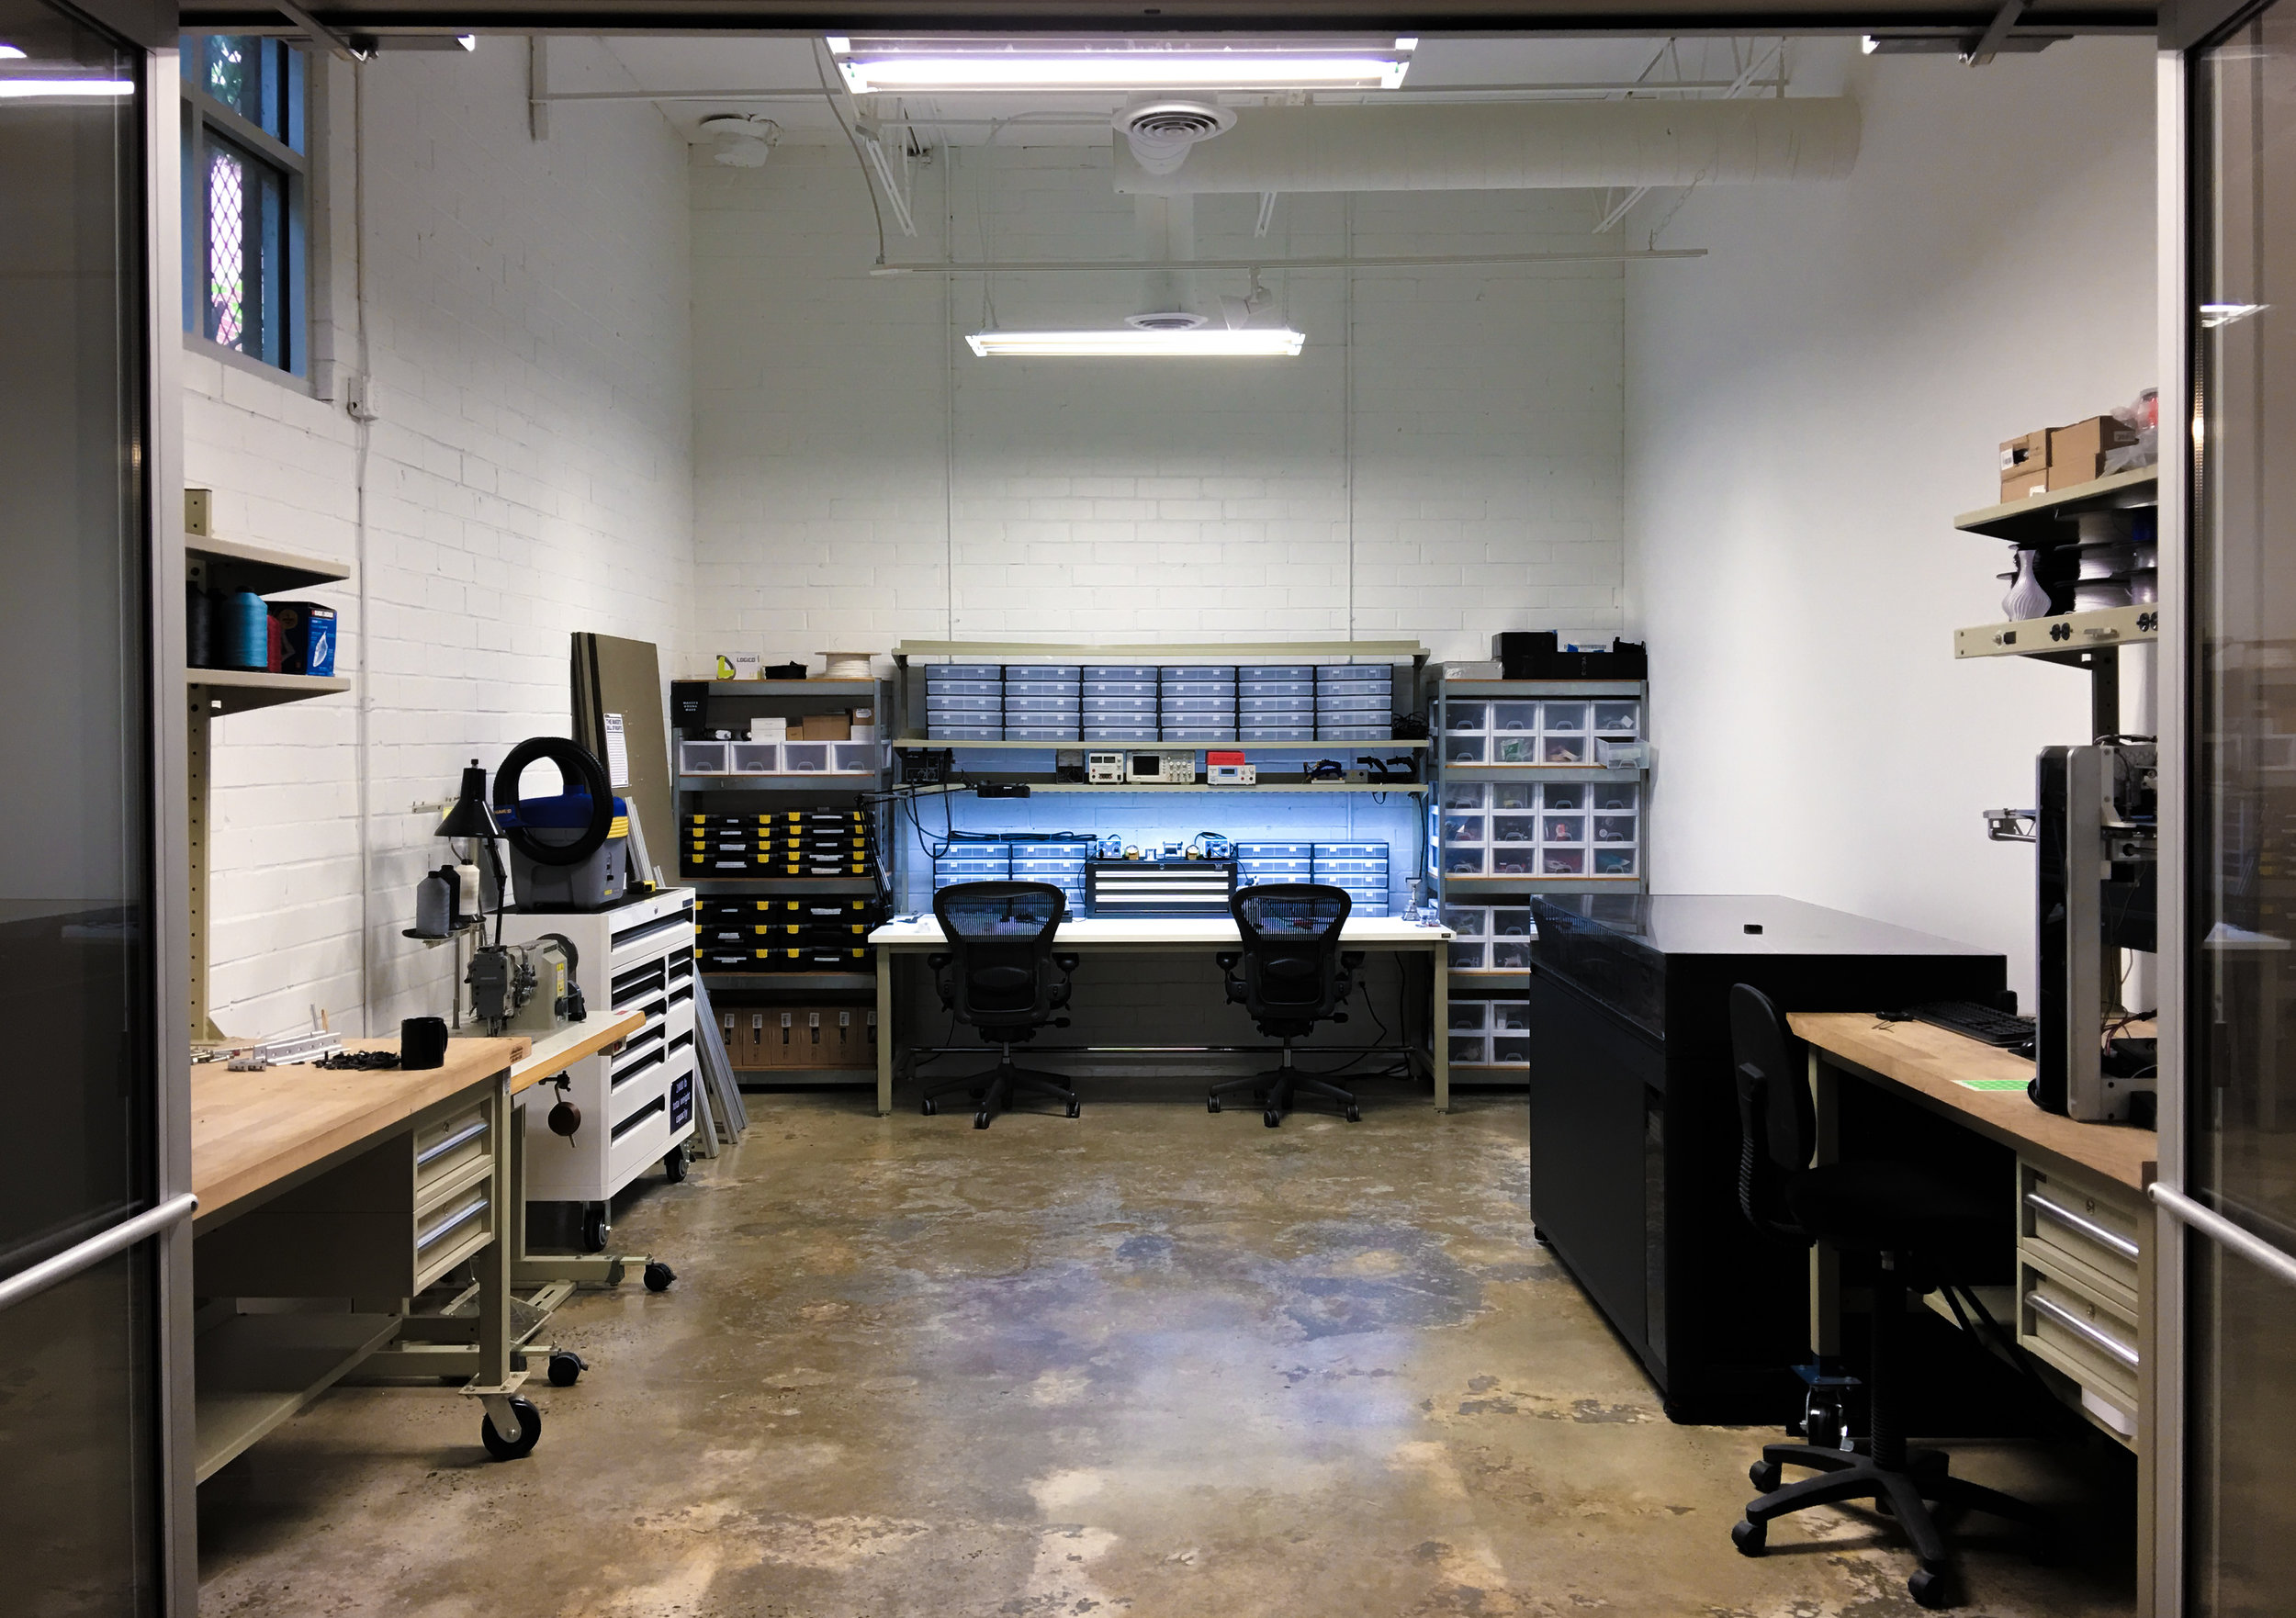 With our electronics lab, 3D printers, soldering stations, sewing machines, and vinyl cutters, it is very tempting to make everything in-house.